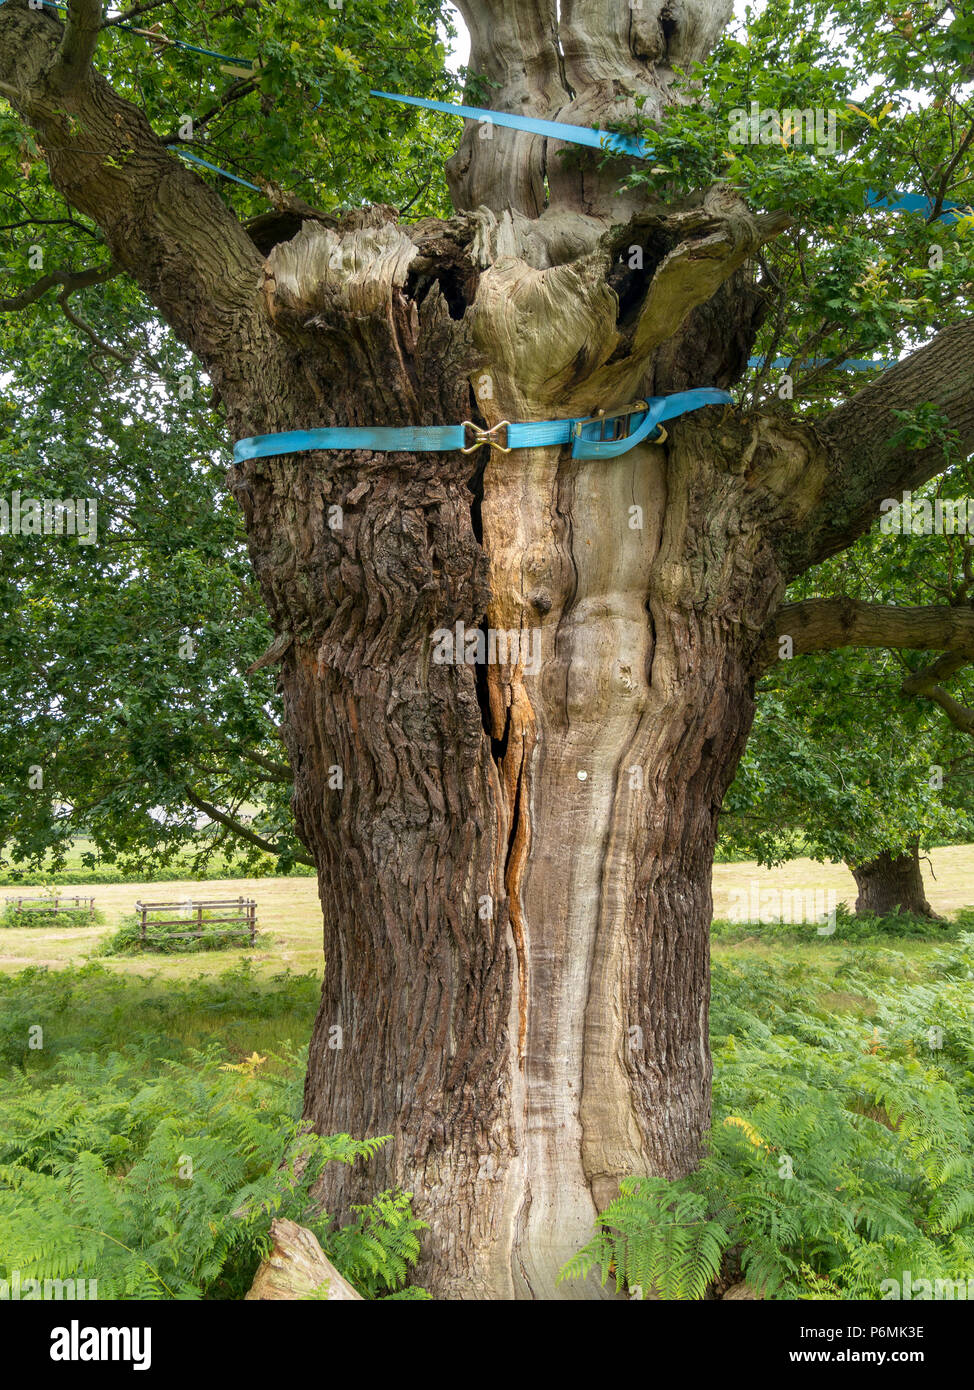 Heavy duty nylon webbing straps being used to protect old Oak tree from splitting in Bradgate Park, Leicestershire, England, UK - Stock Image